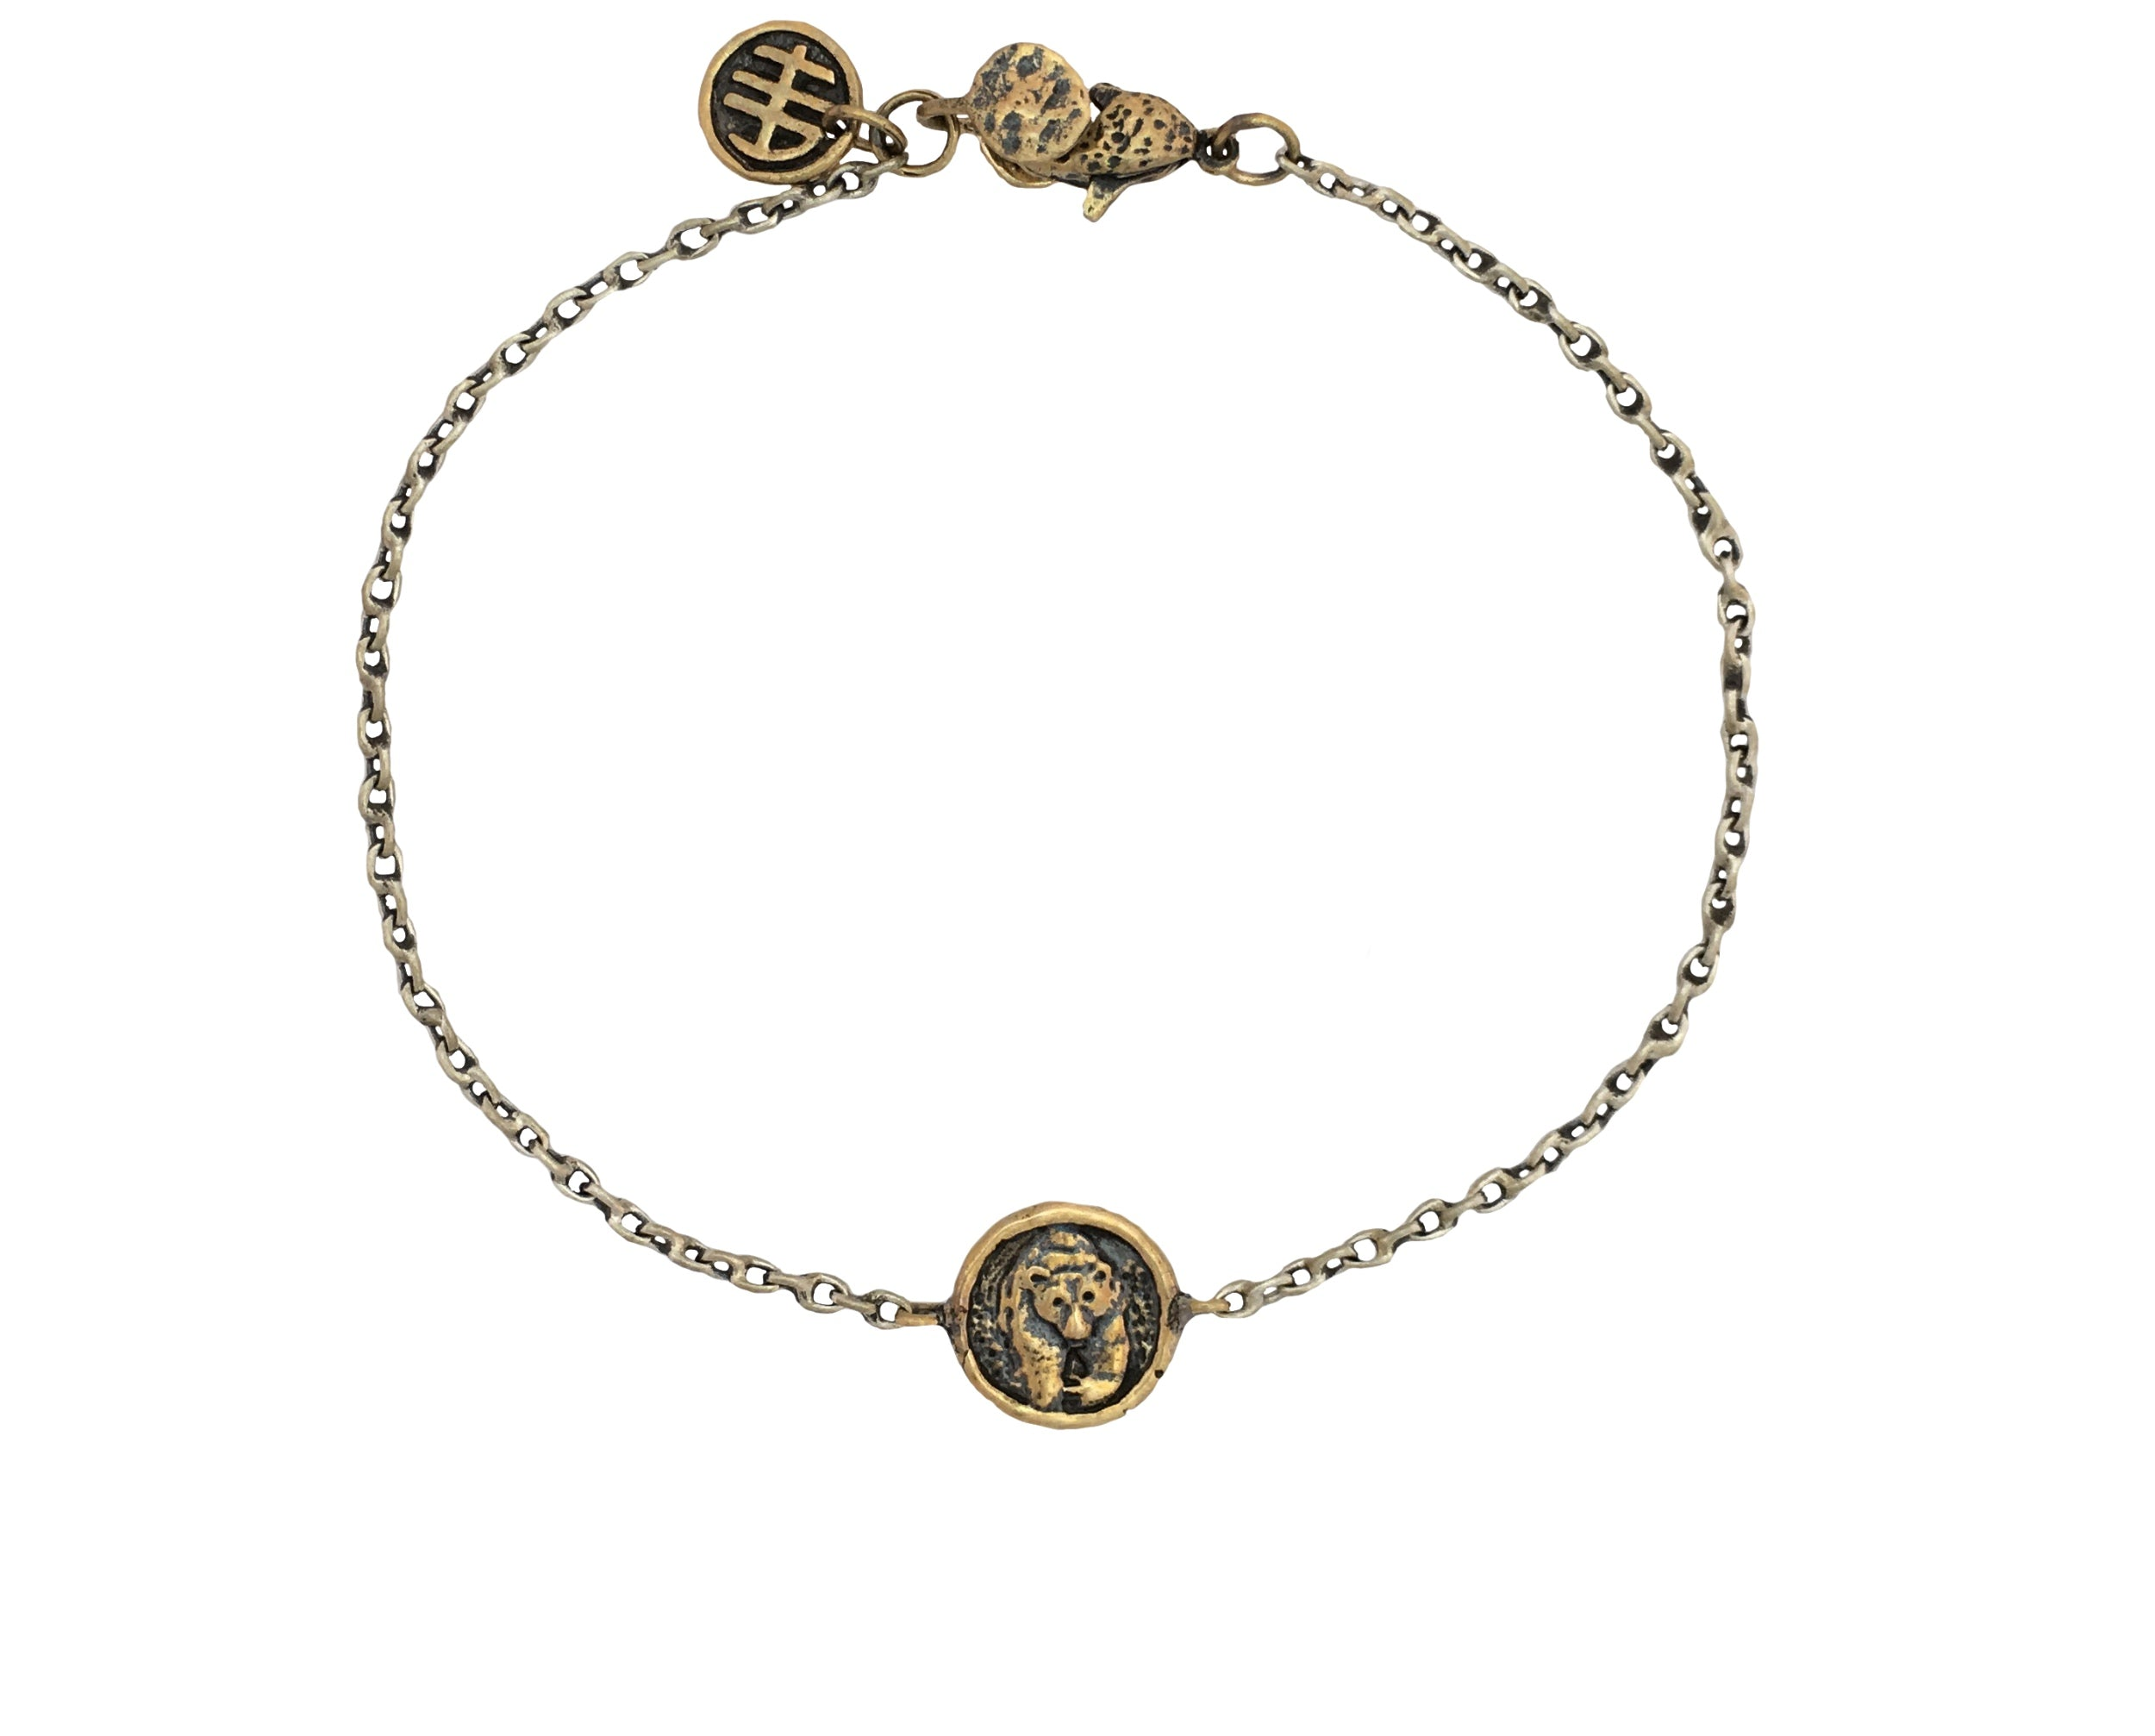 Bear Mini Coin Bracelet | Bronze and Sterling Silver Jewelry Handcrafted